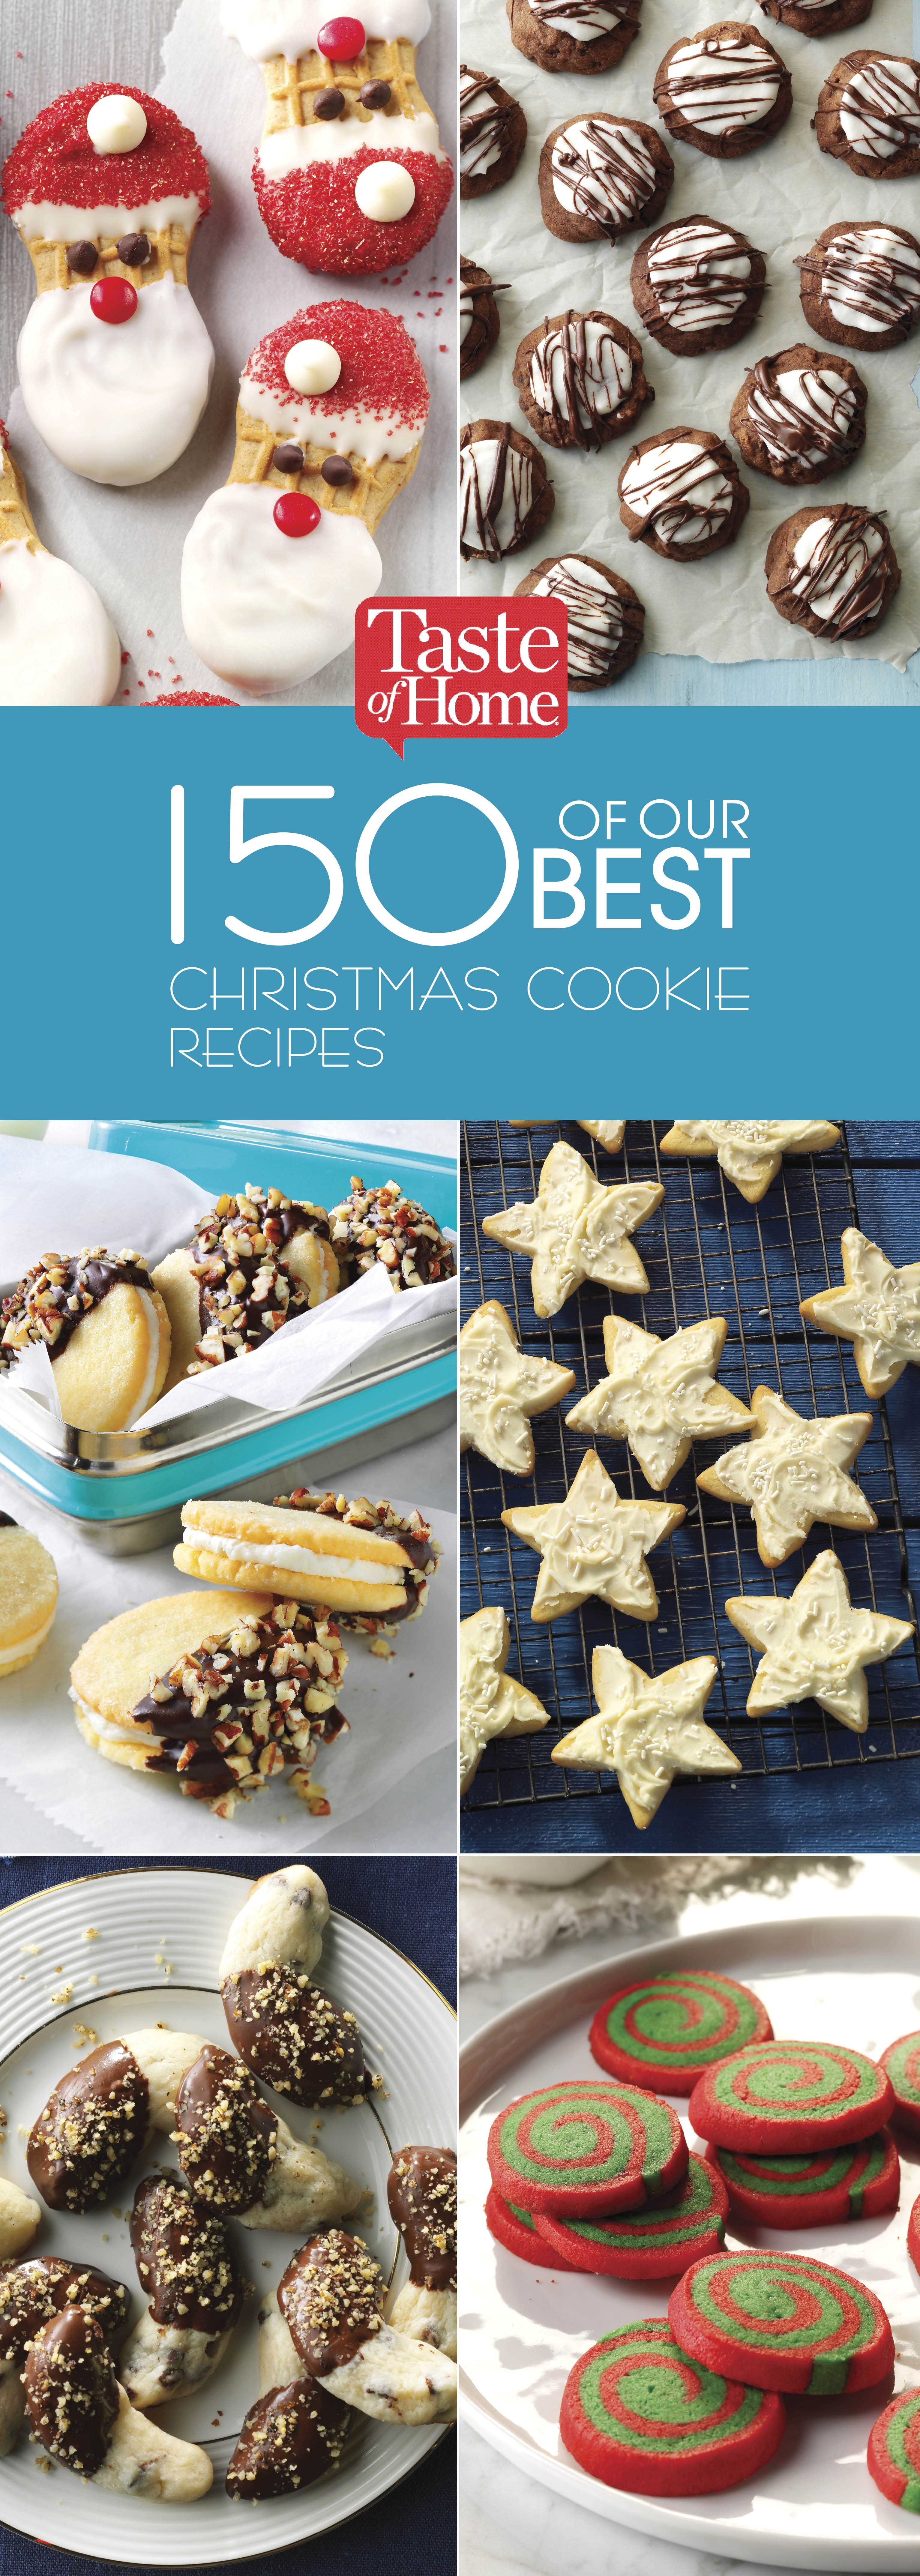 150 Of Our Best Christmas Cookie Recipes Christmas Cookies Best